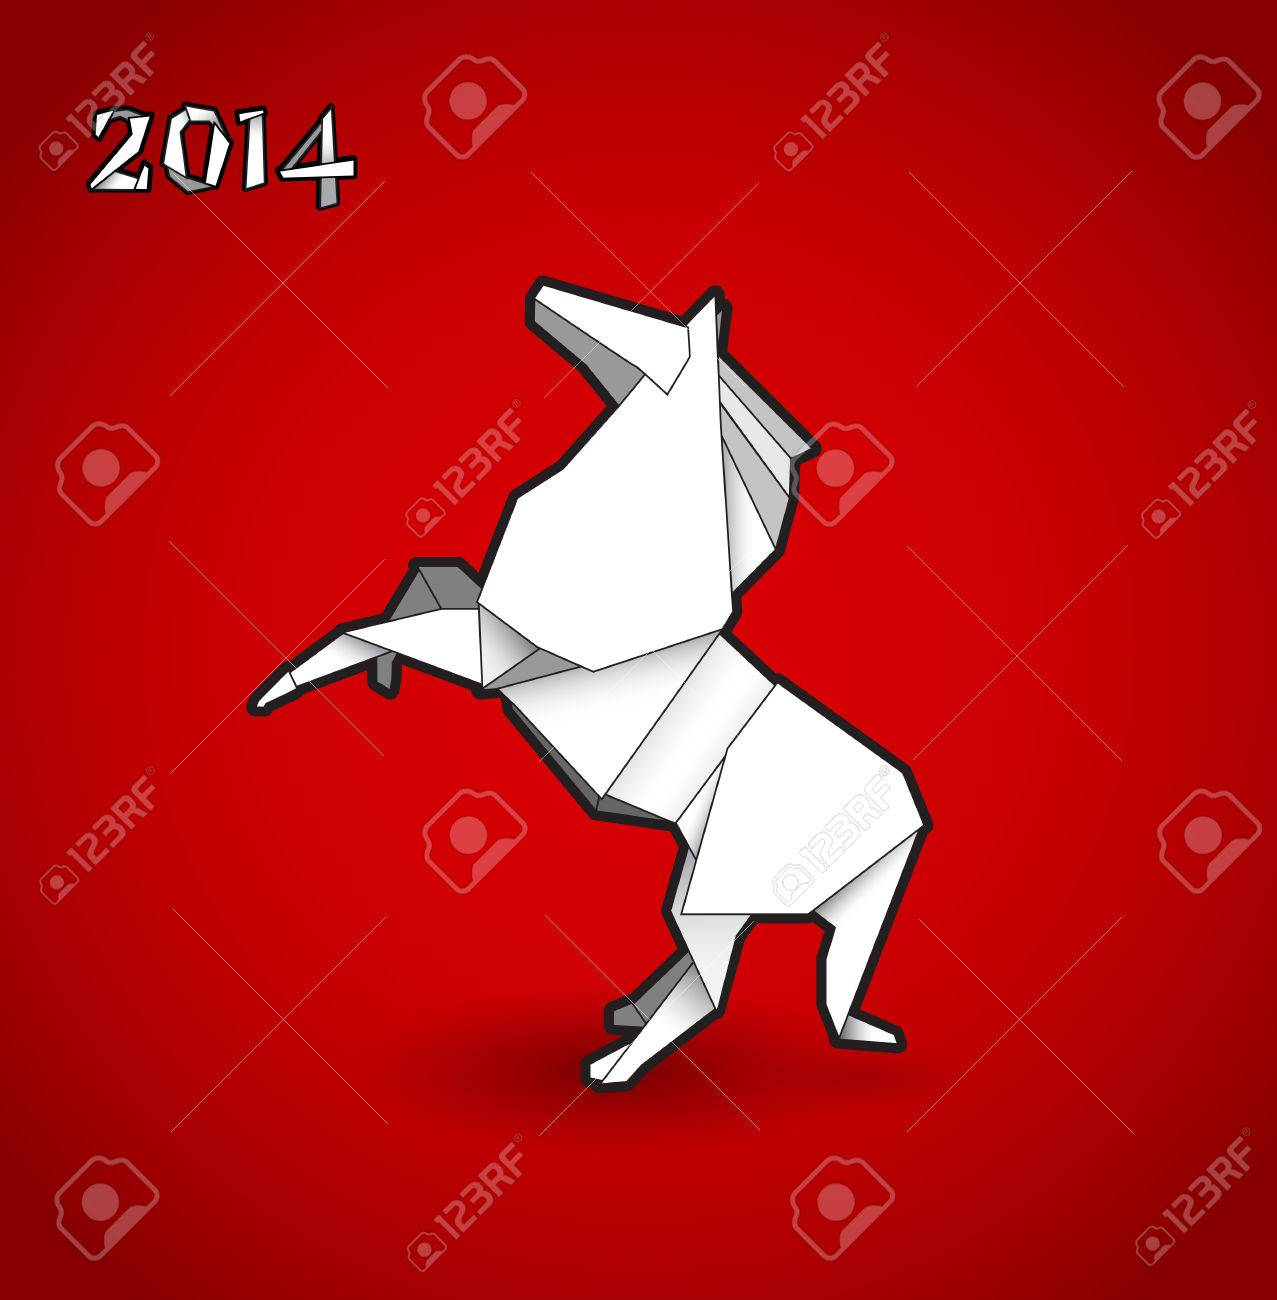 Oriental origami New year horse on red background. Stock Vector - 22764410